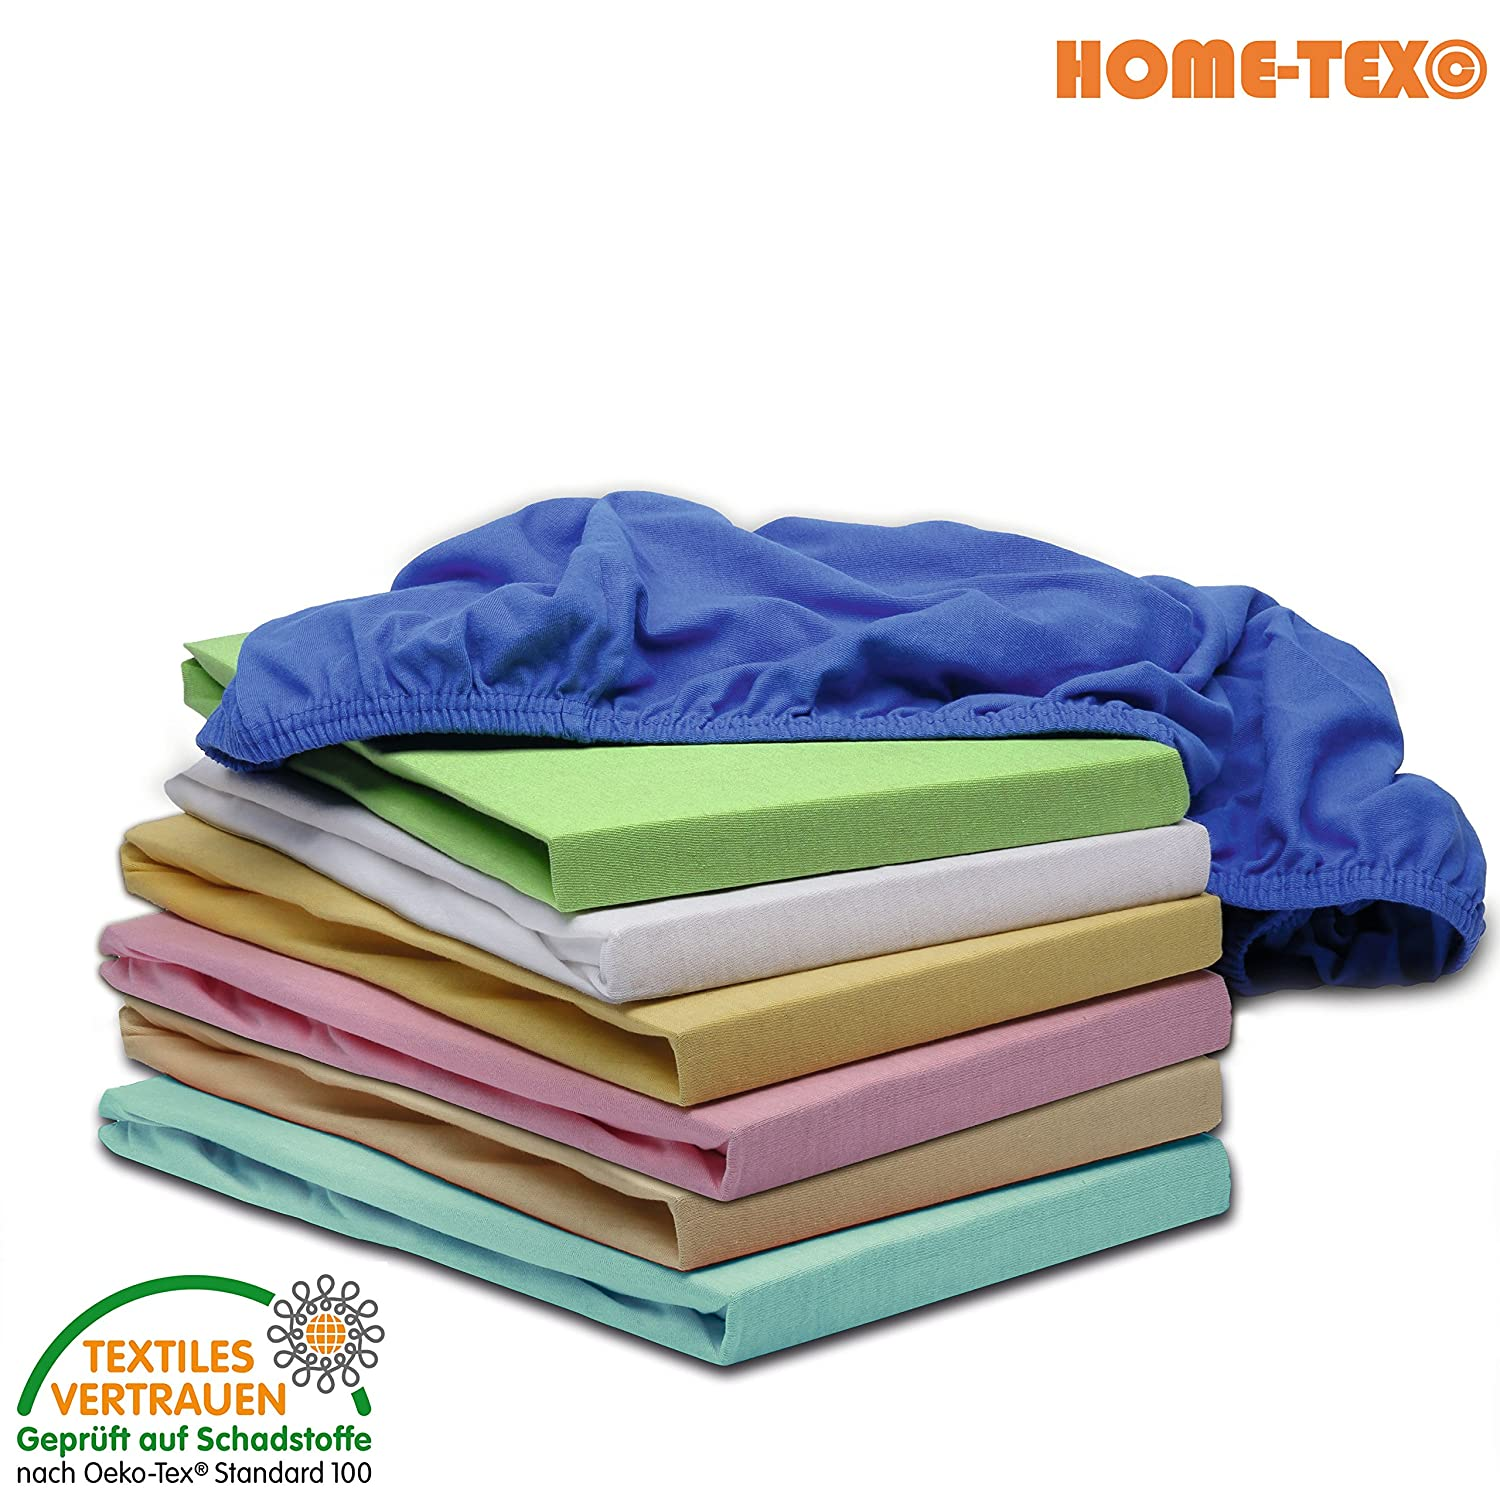 Home-Tex Children's Bed Sheet Fitted Sheet 70x 140cm Mattress Cover Fitted For Kids & Babies - | Oeko-Tex Standard Approved | Premium Quality 100% Cotton Home-Tex©